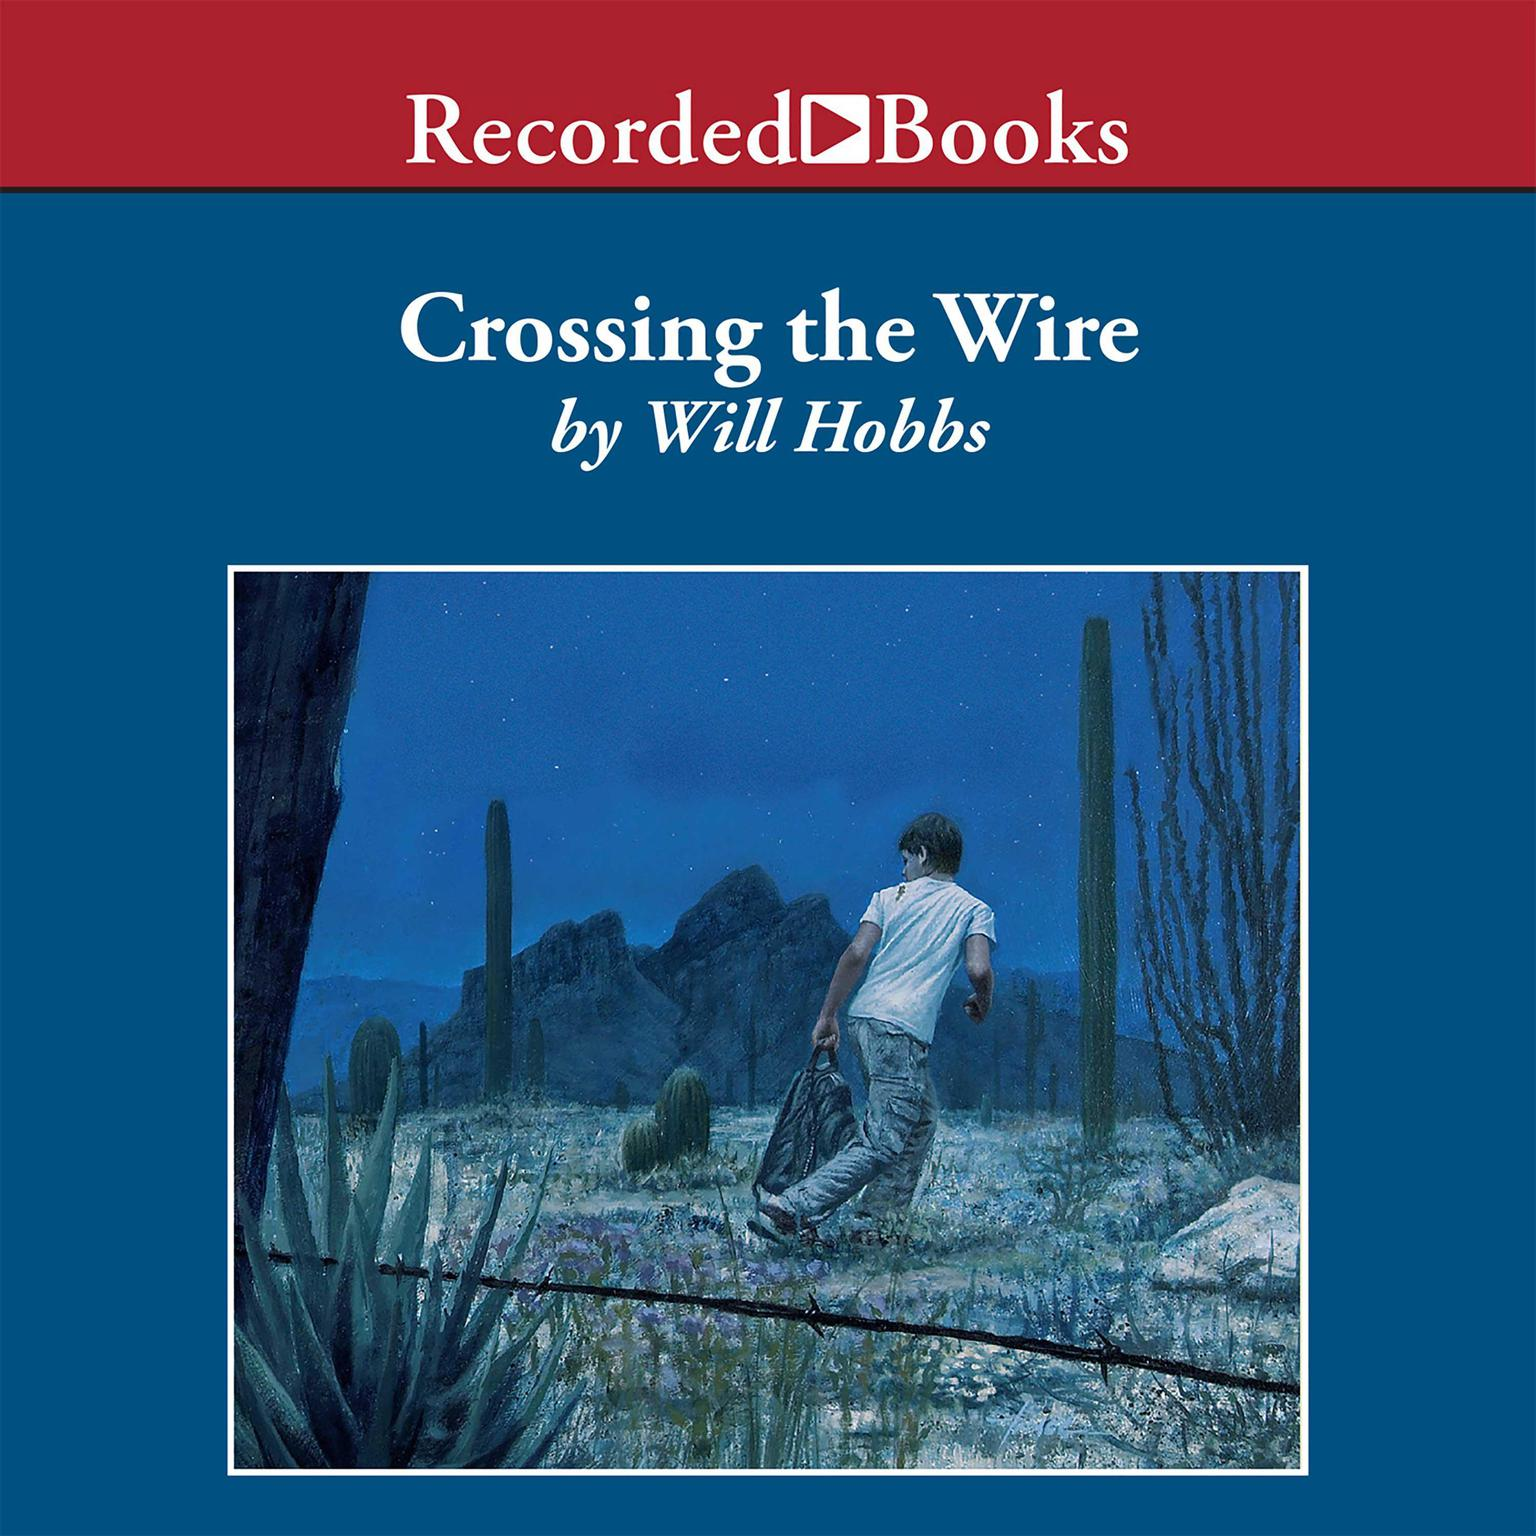 Crossing the Wire - Audiobook | Listen Instantly!